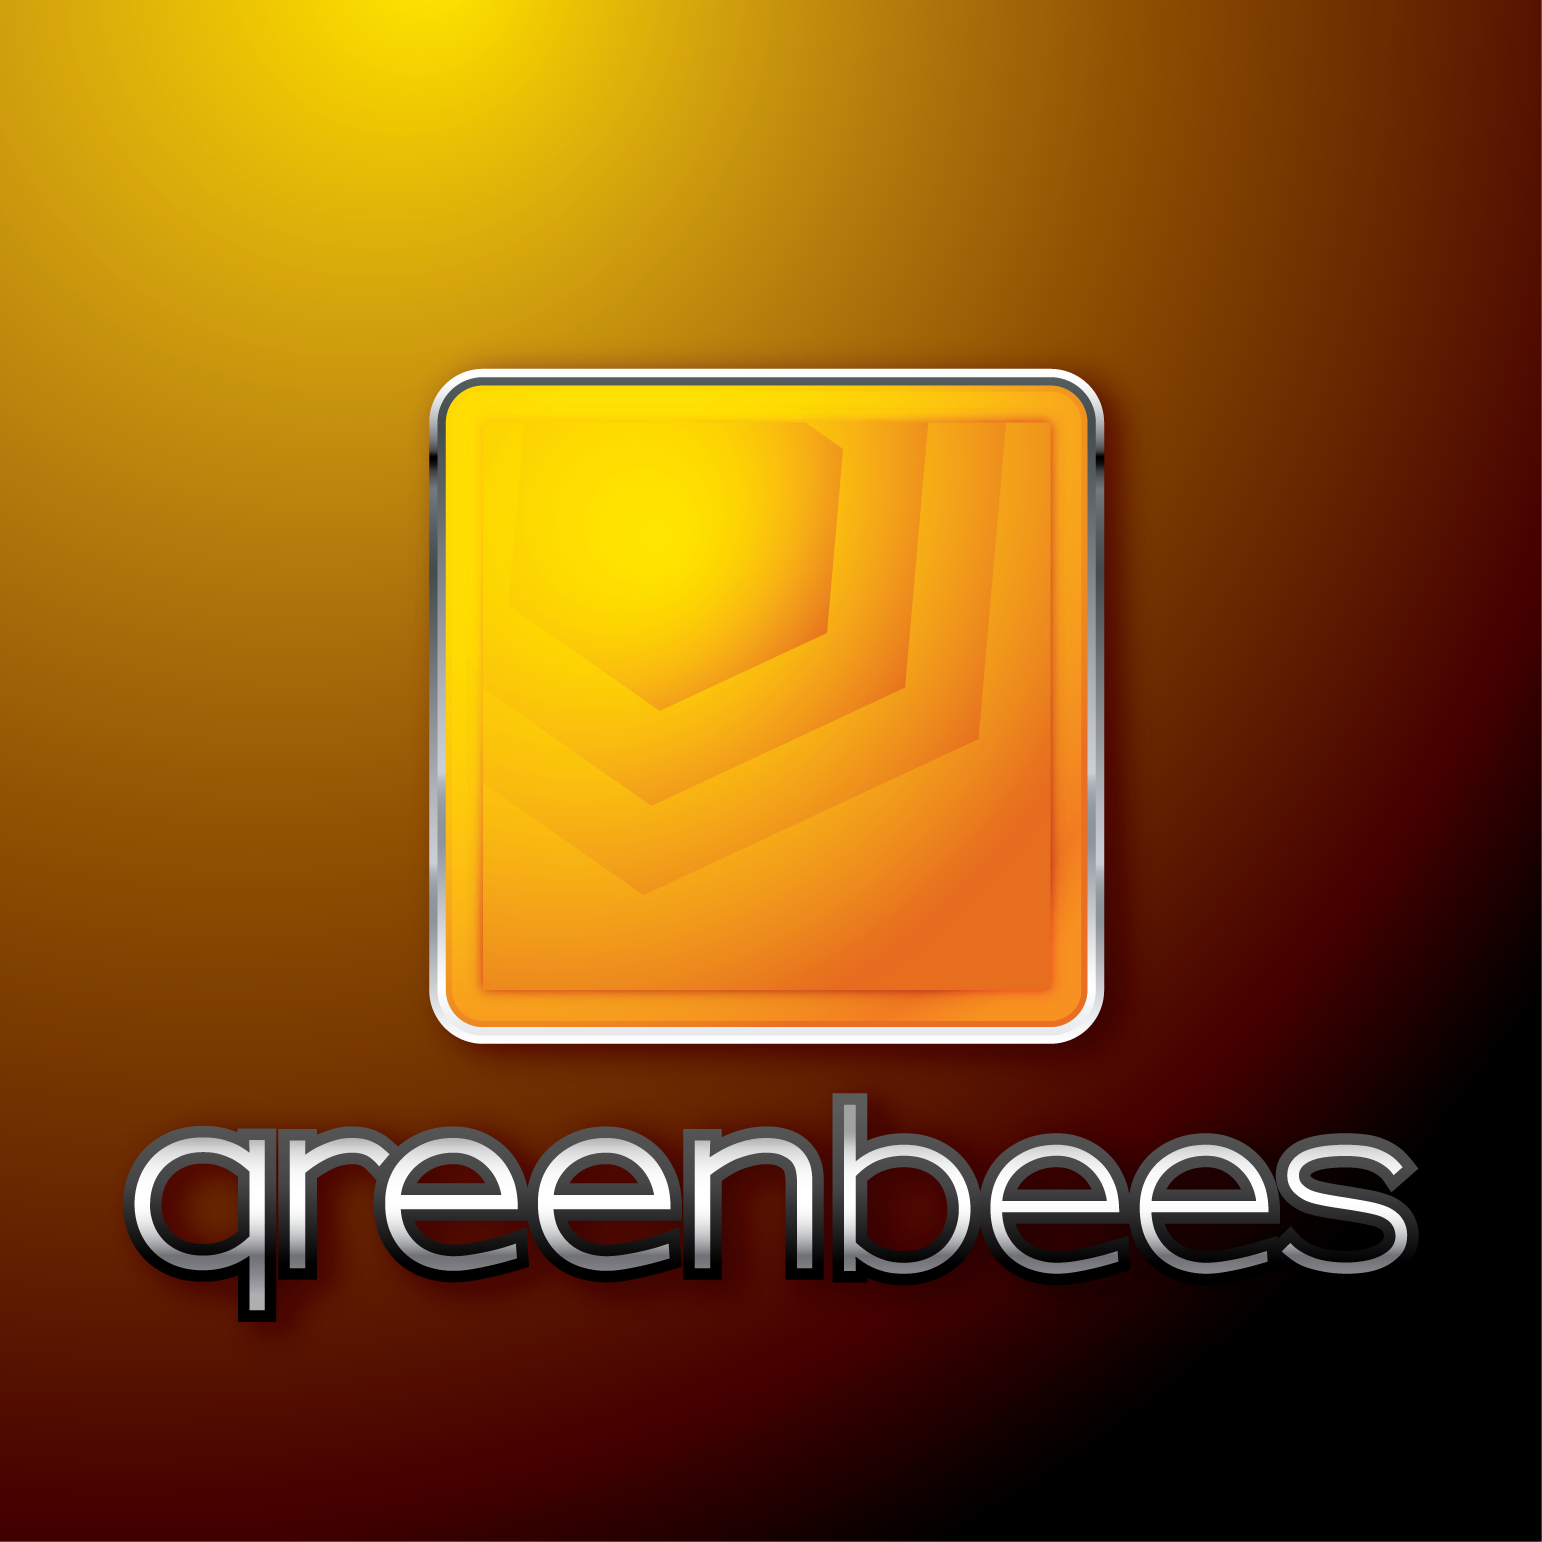 Logo Design by Teresa Abney - Entry No. 265 in the Logo Design Contest Greenbees Logo Design.